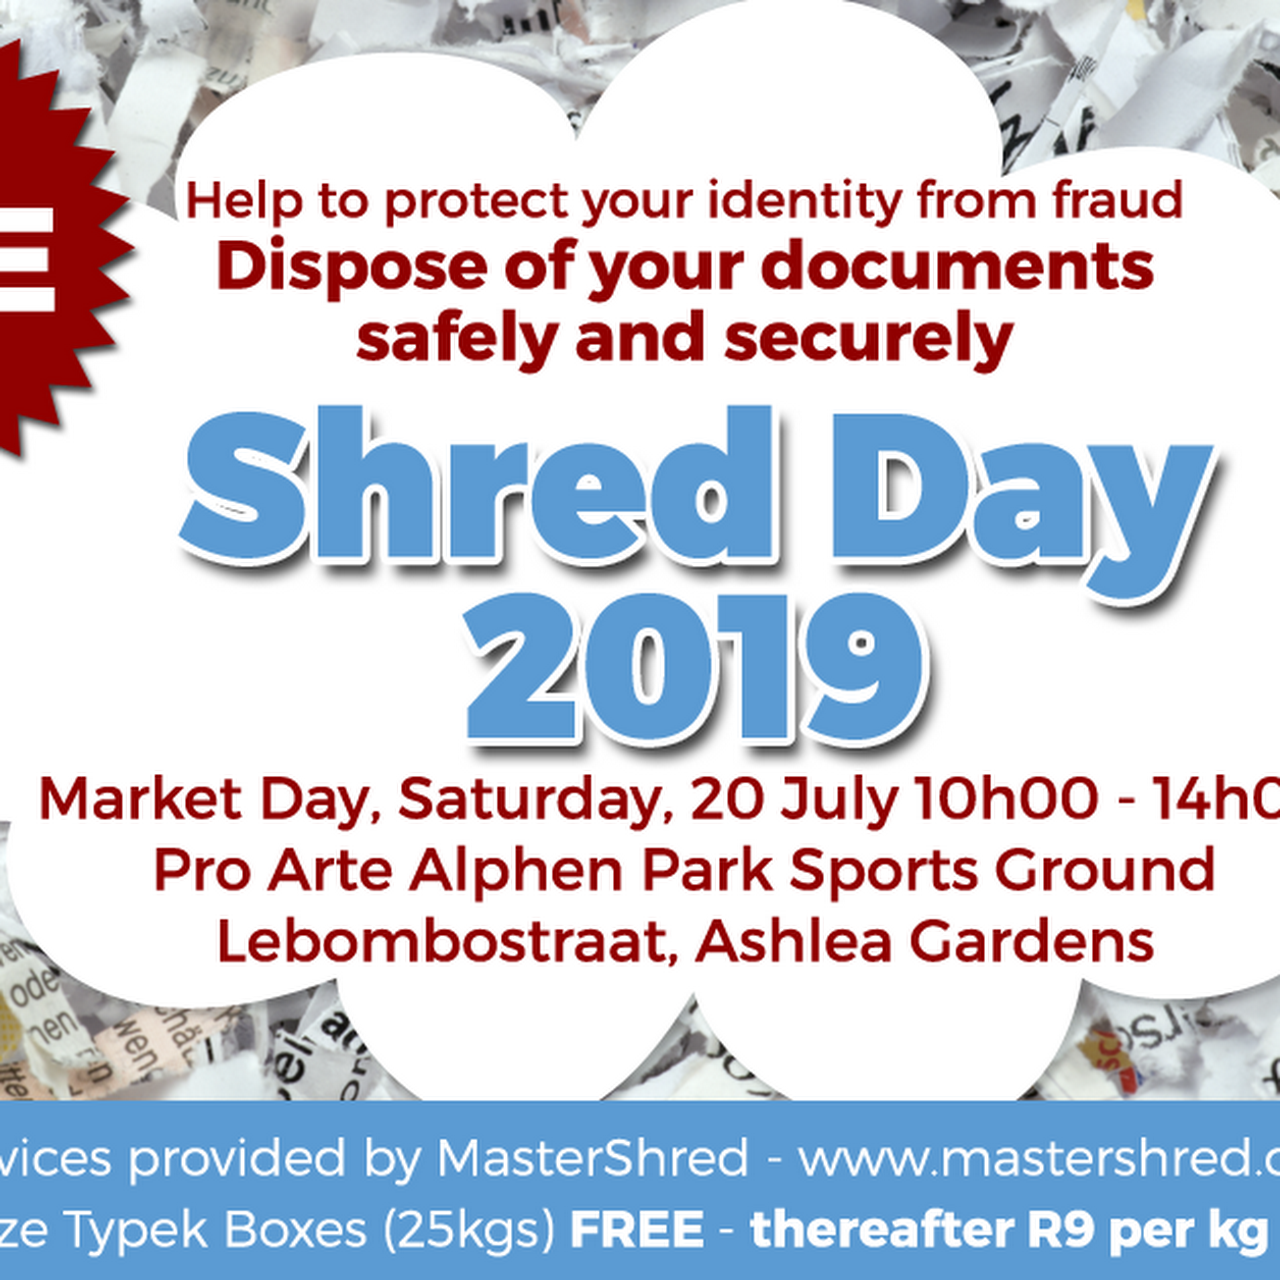 MasterShred - Shredding Service in Garsfontein